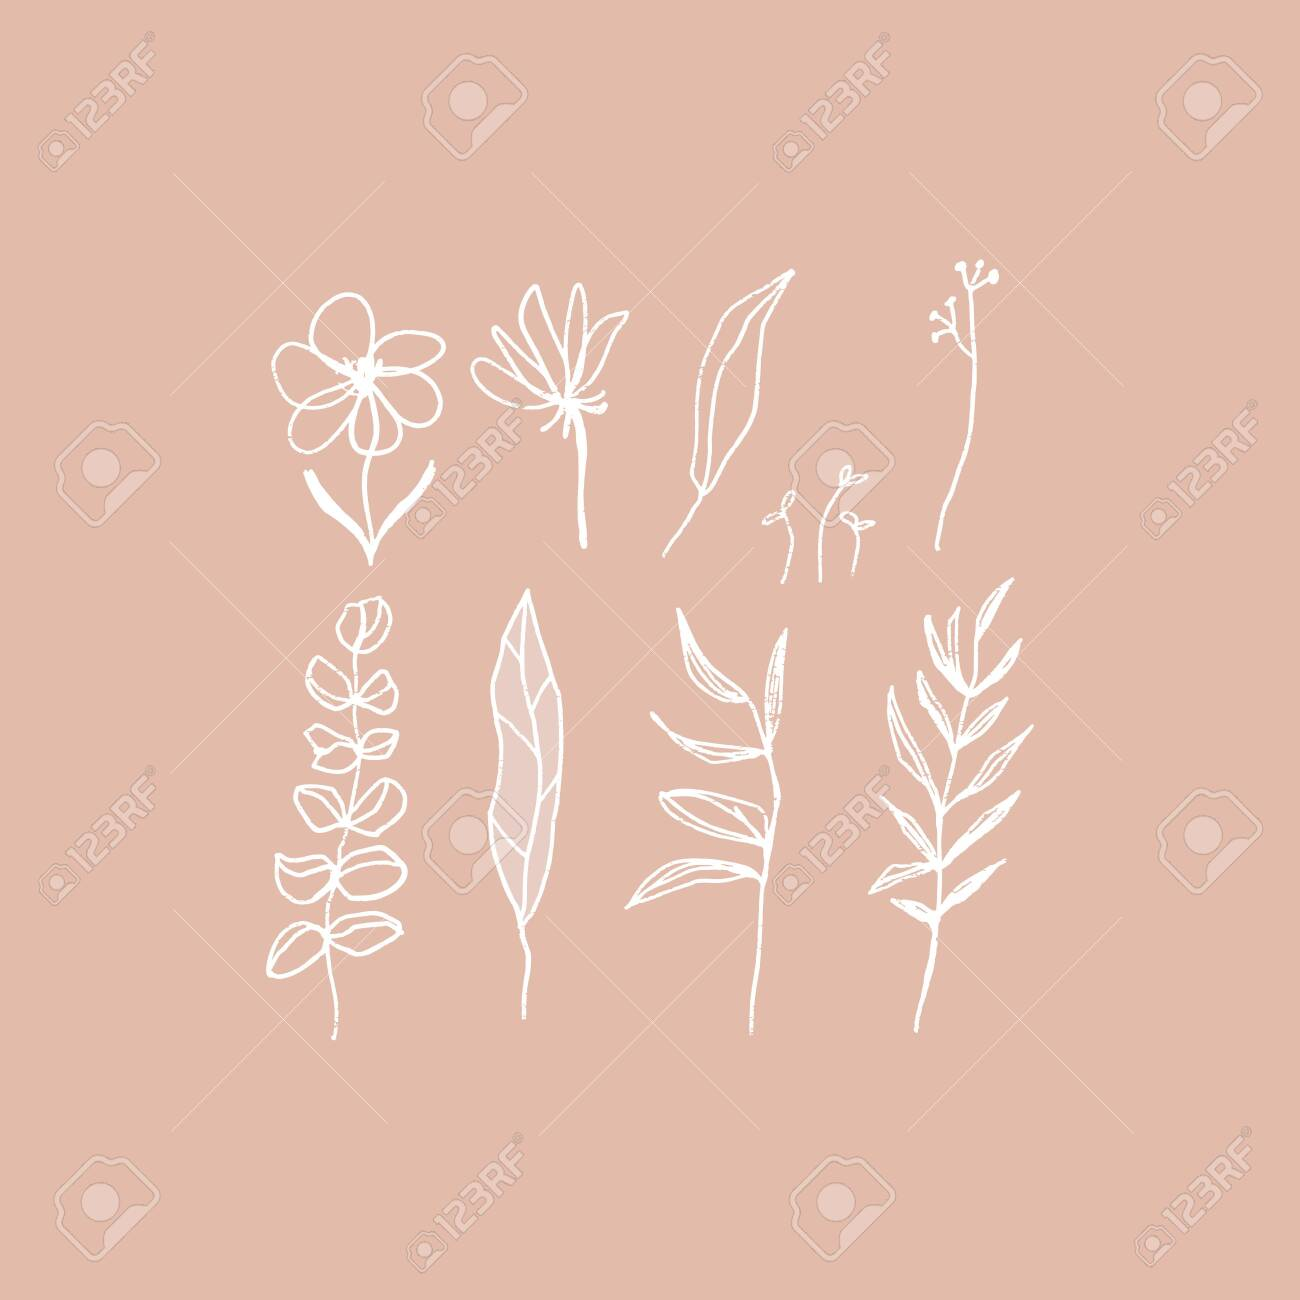 Hand Drawn Aesthetic Floral Elements Set In White And Pink Cozy Royalty Free Cliparts Vectors And Stock Illustration Image 126269319